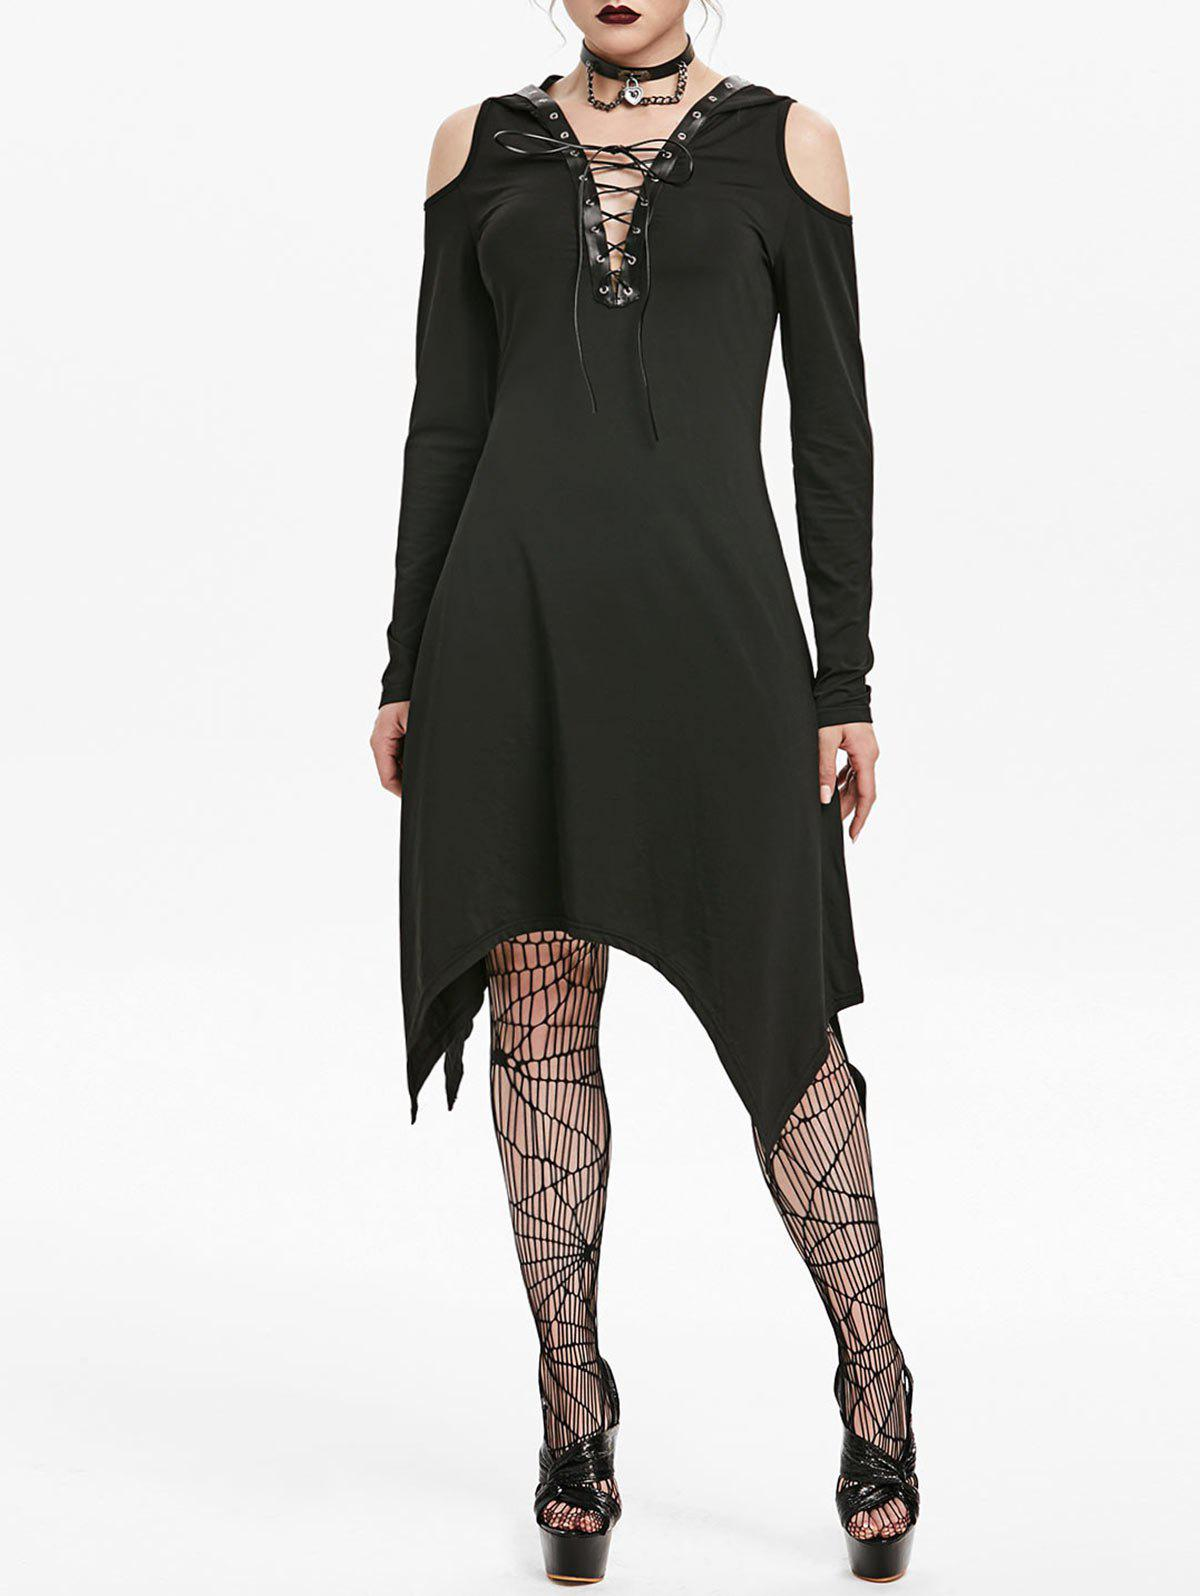 New Hooded Cold Shoulder Lace-up Grommet Handkerchief Gothic Dress